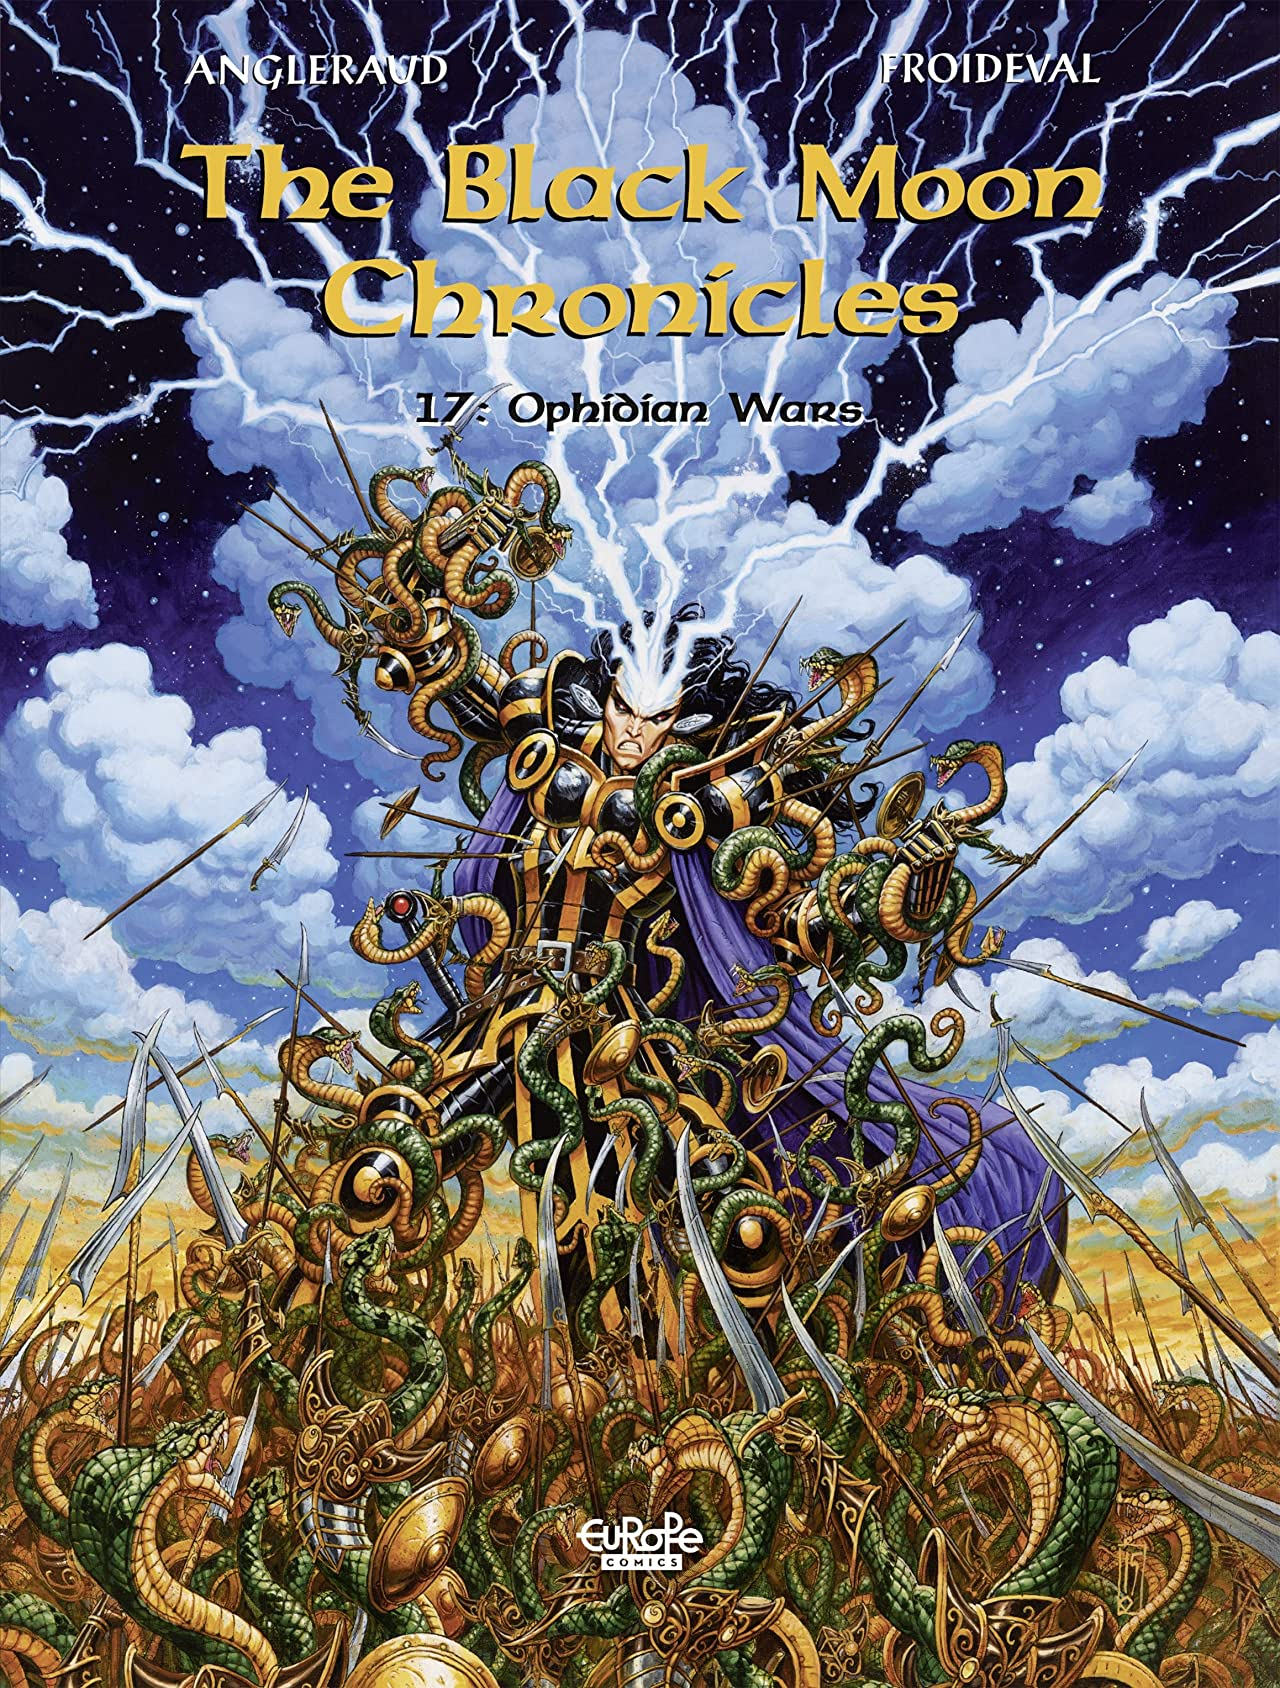 The Black Moon Chronicles Vol. 17: Ophidian Wars